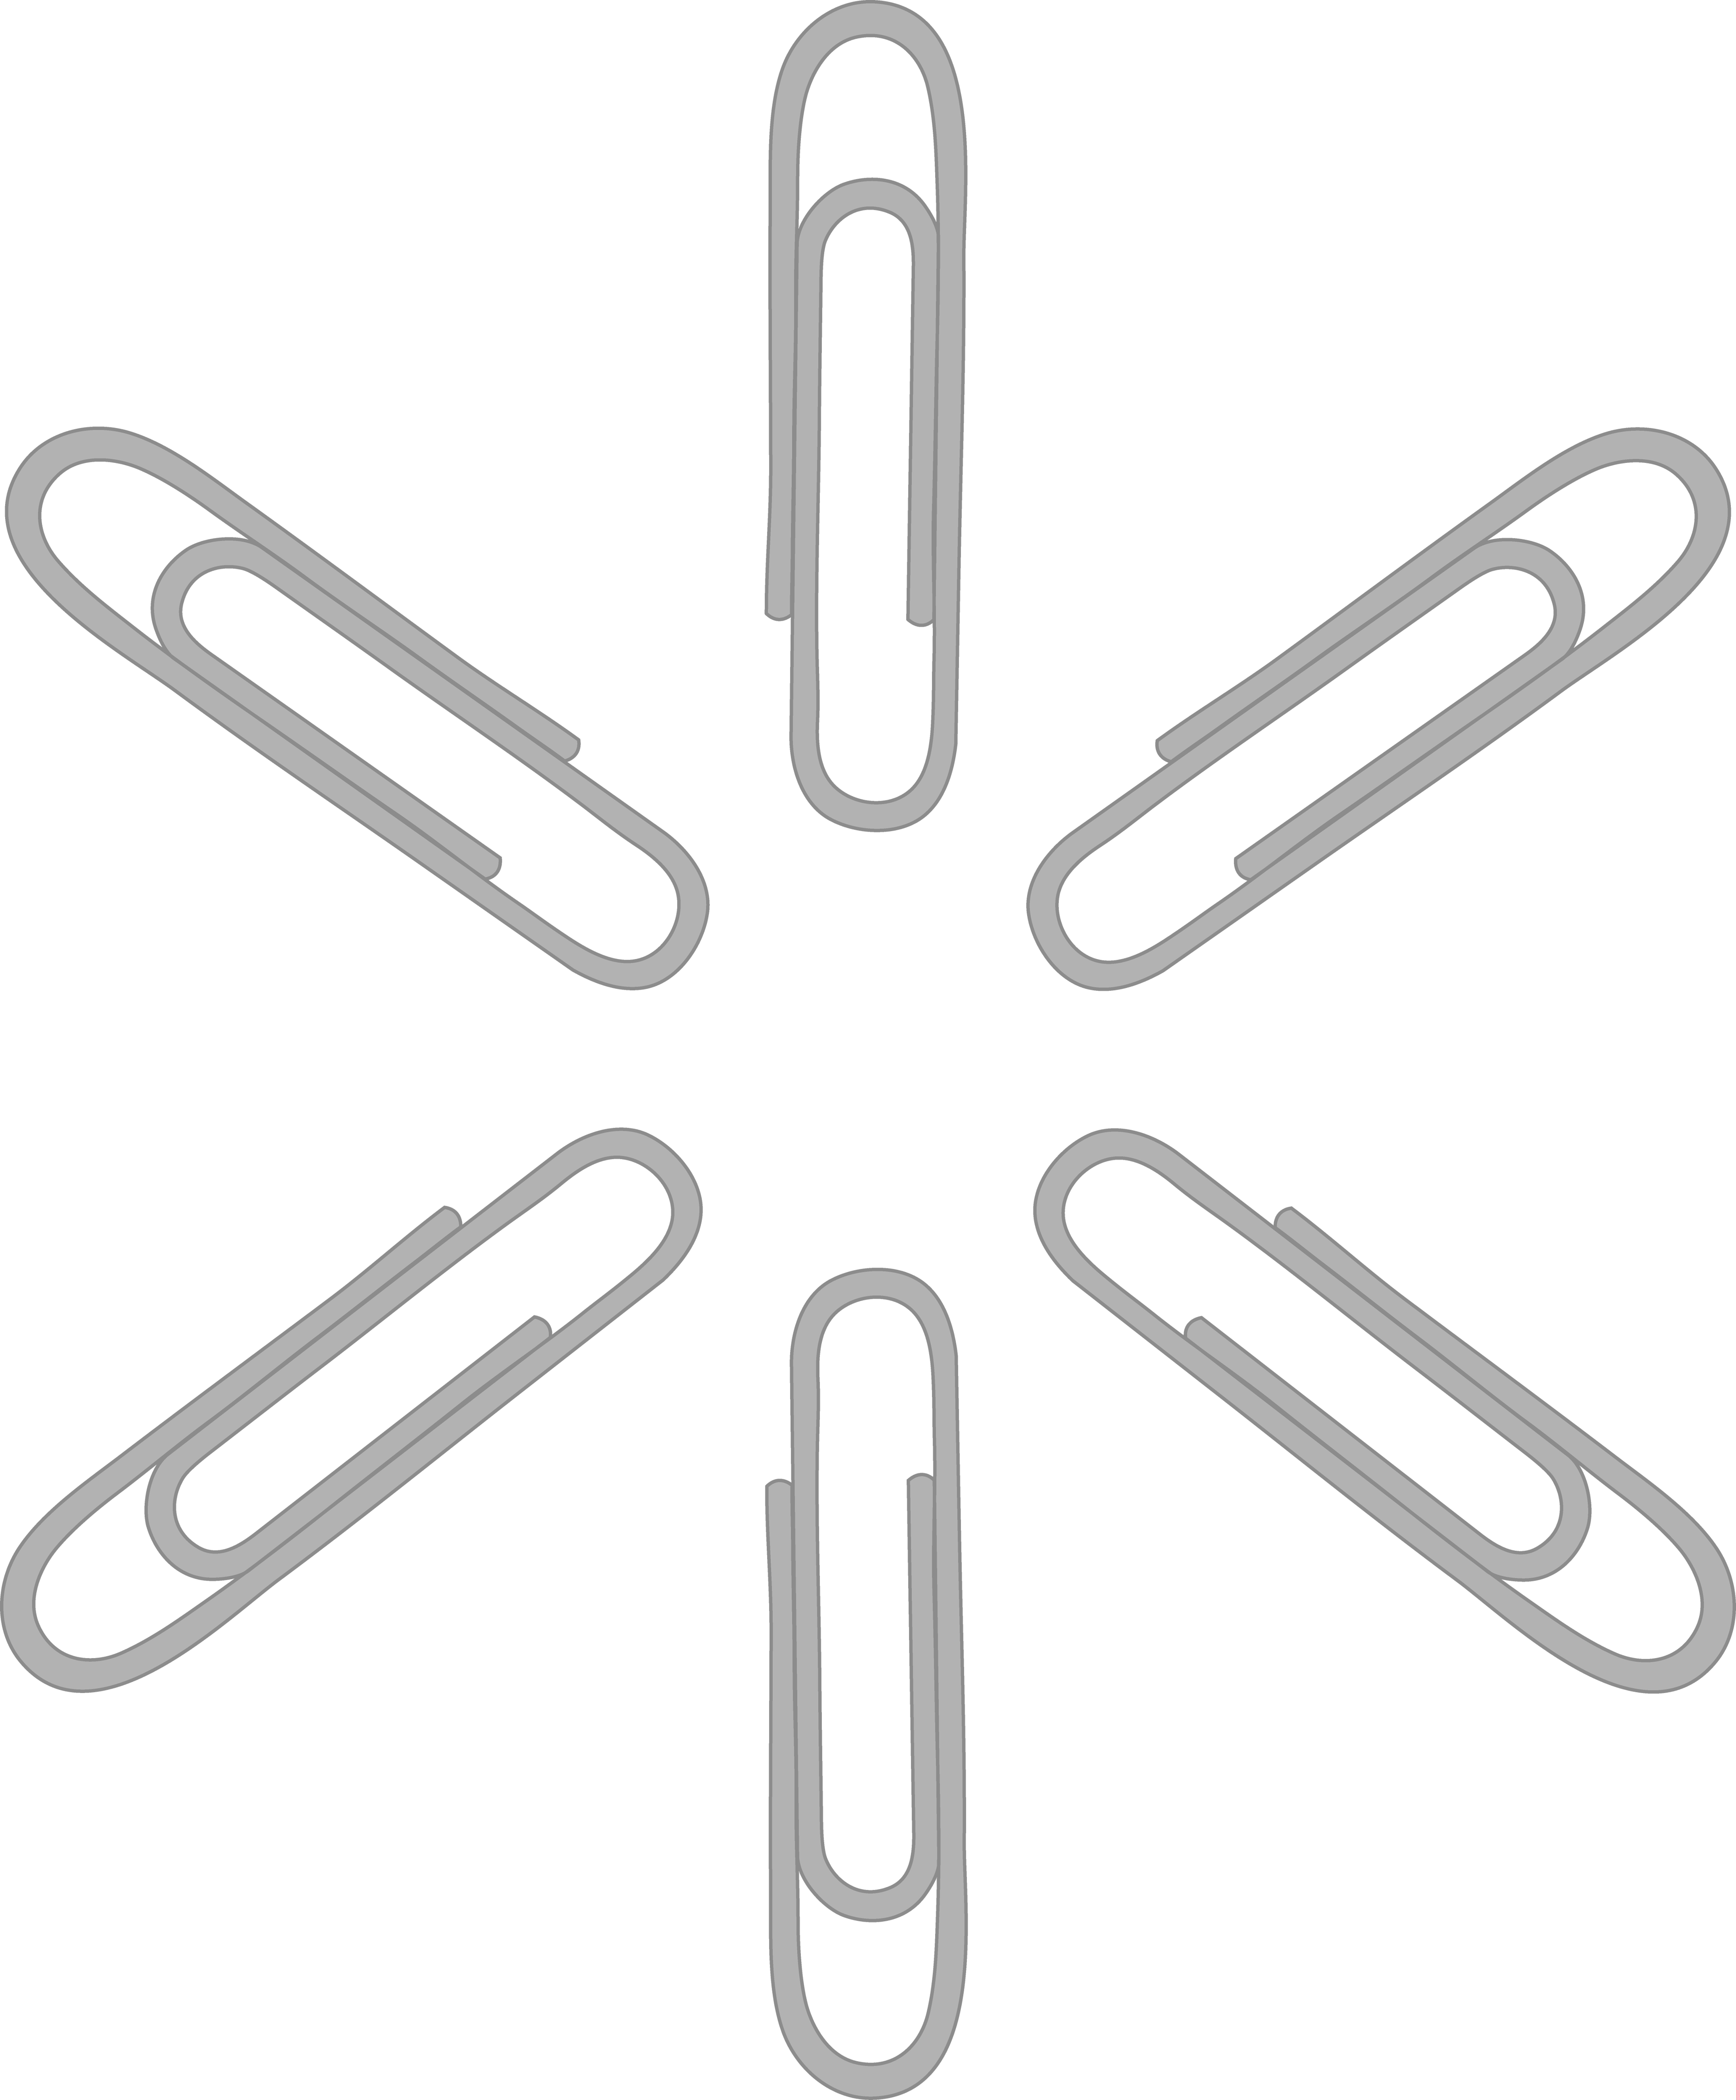 Paperclip clipart paper clip. Silver pattern free art